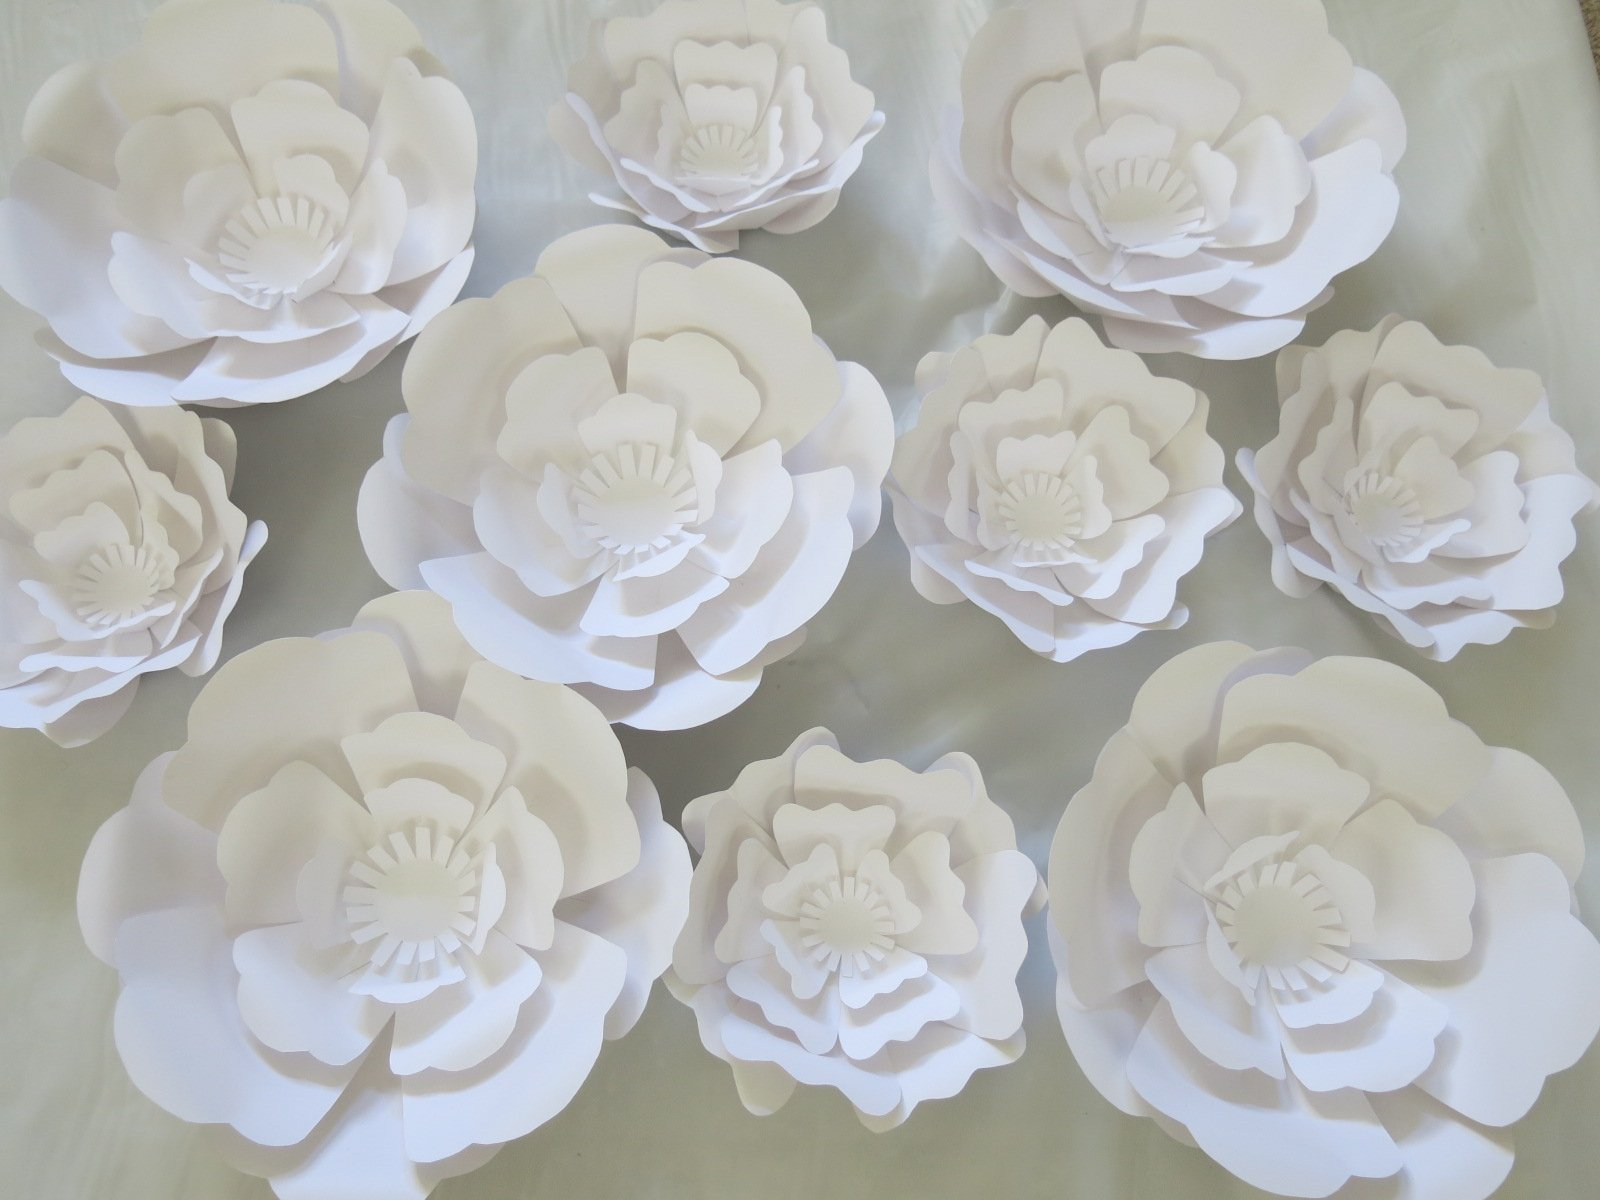 10 Piece Giant Flower Wall Backdrop Set, White Rose Wedding Photography Background 6-12'' Paper Roses